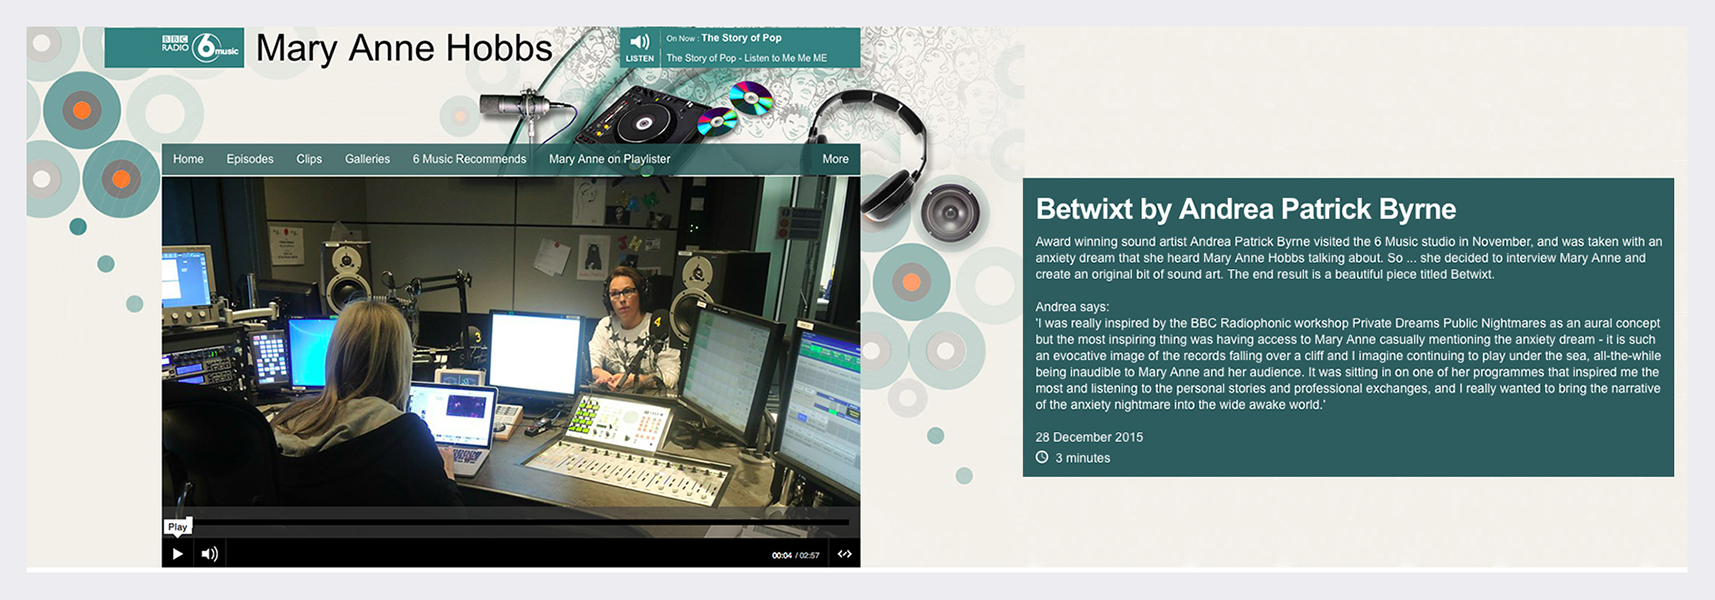 BBC 6 Music Mary Anne Hobbs (Lauren Laverne show) - Broadcast December 2015 (see panel for radio audio).